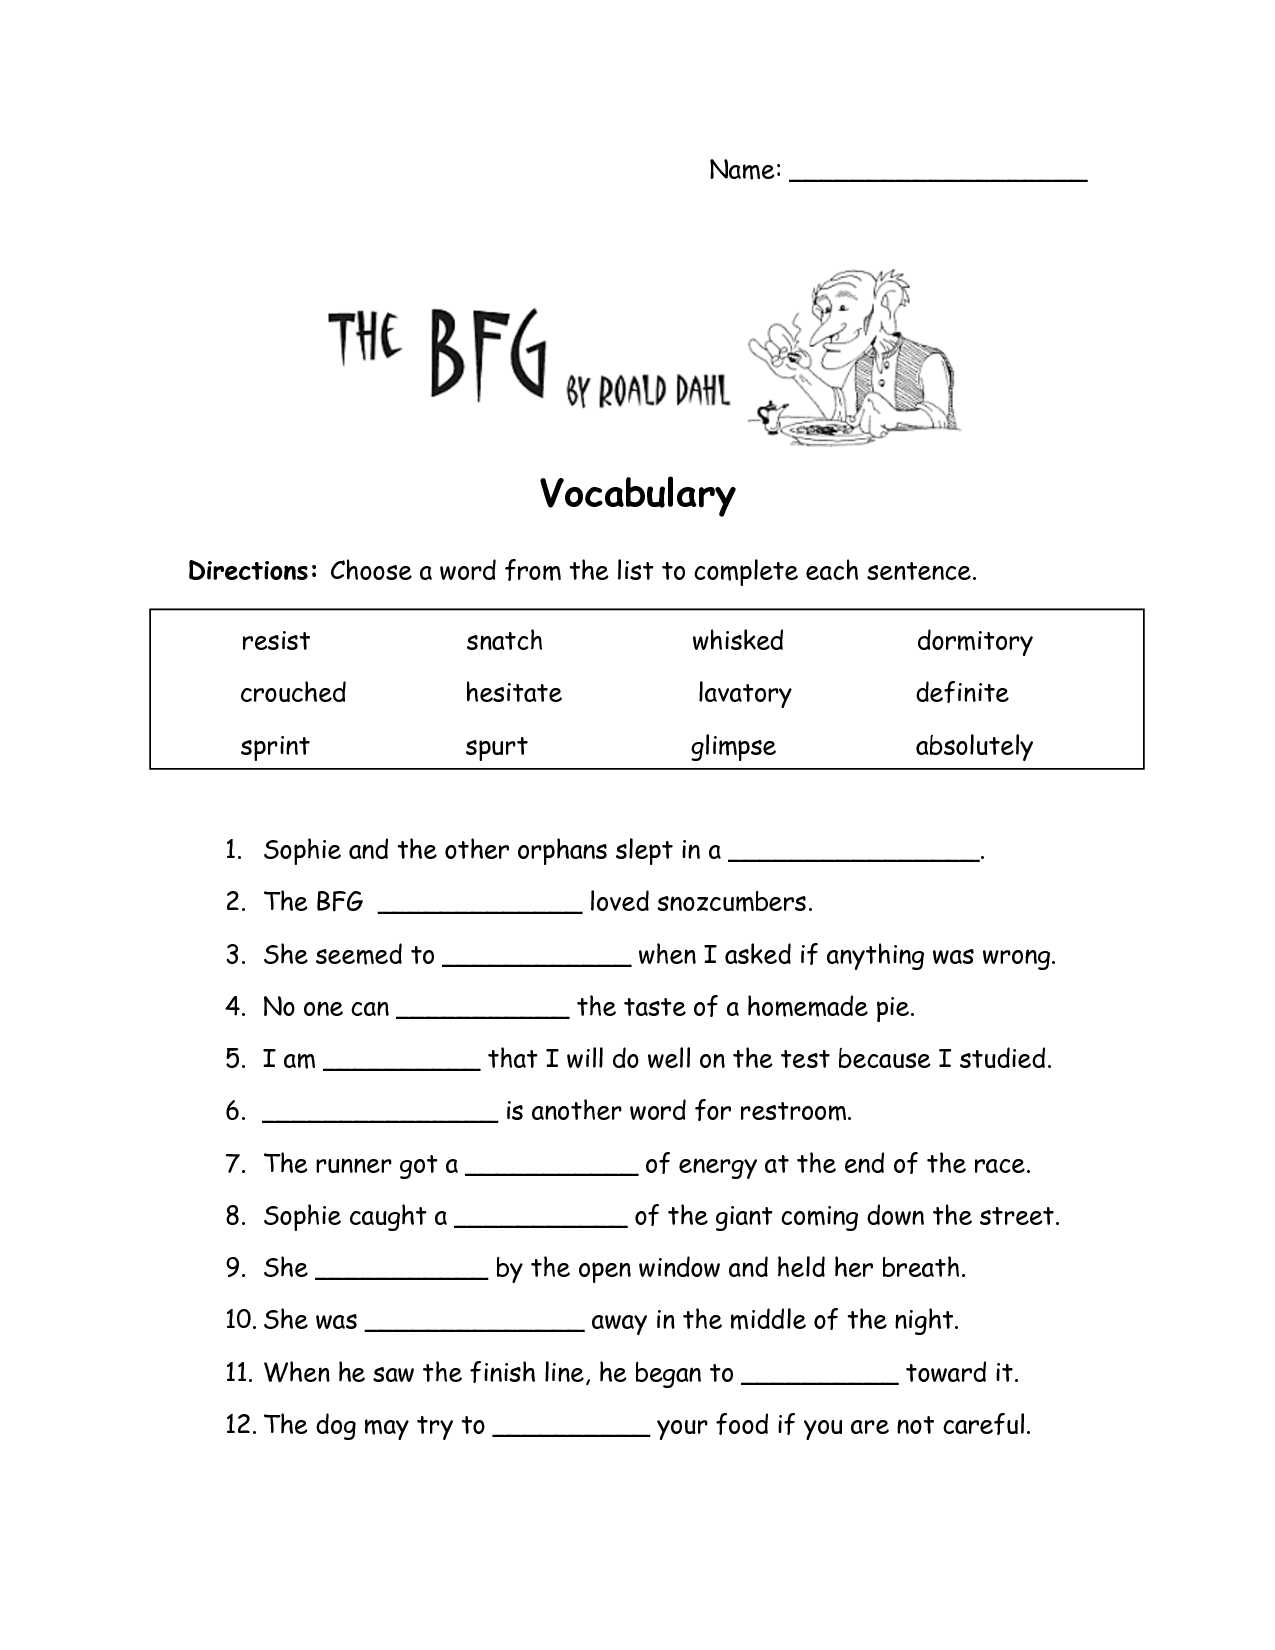 4th Grade Reading Comprehension Worksheets Multiple Choice with the Bfg Worksheets the Bfg Vocabulary Worksheet